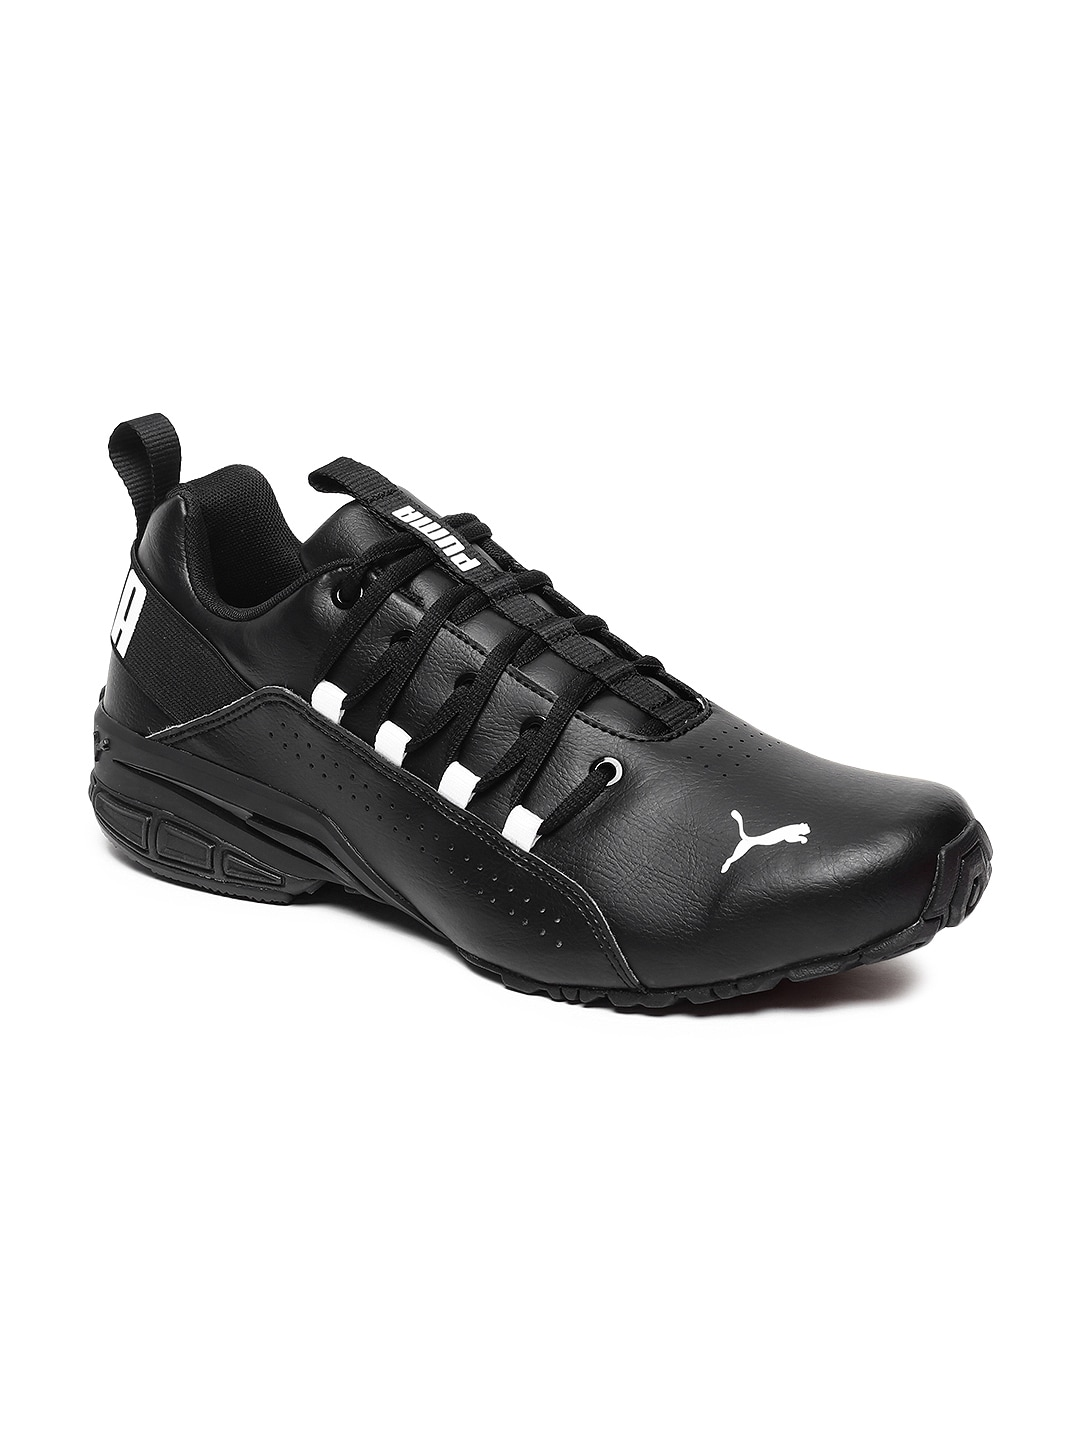 4675f5f16a9 Puma Shoes - Buy Puma Shoes for Men   Women Online in India